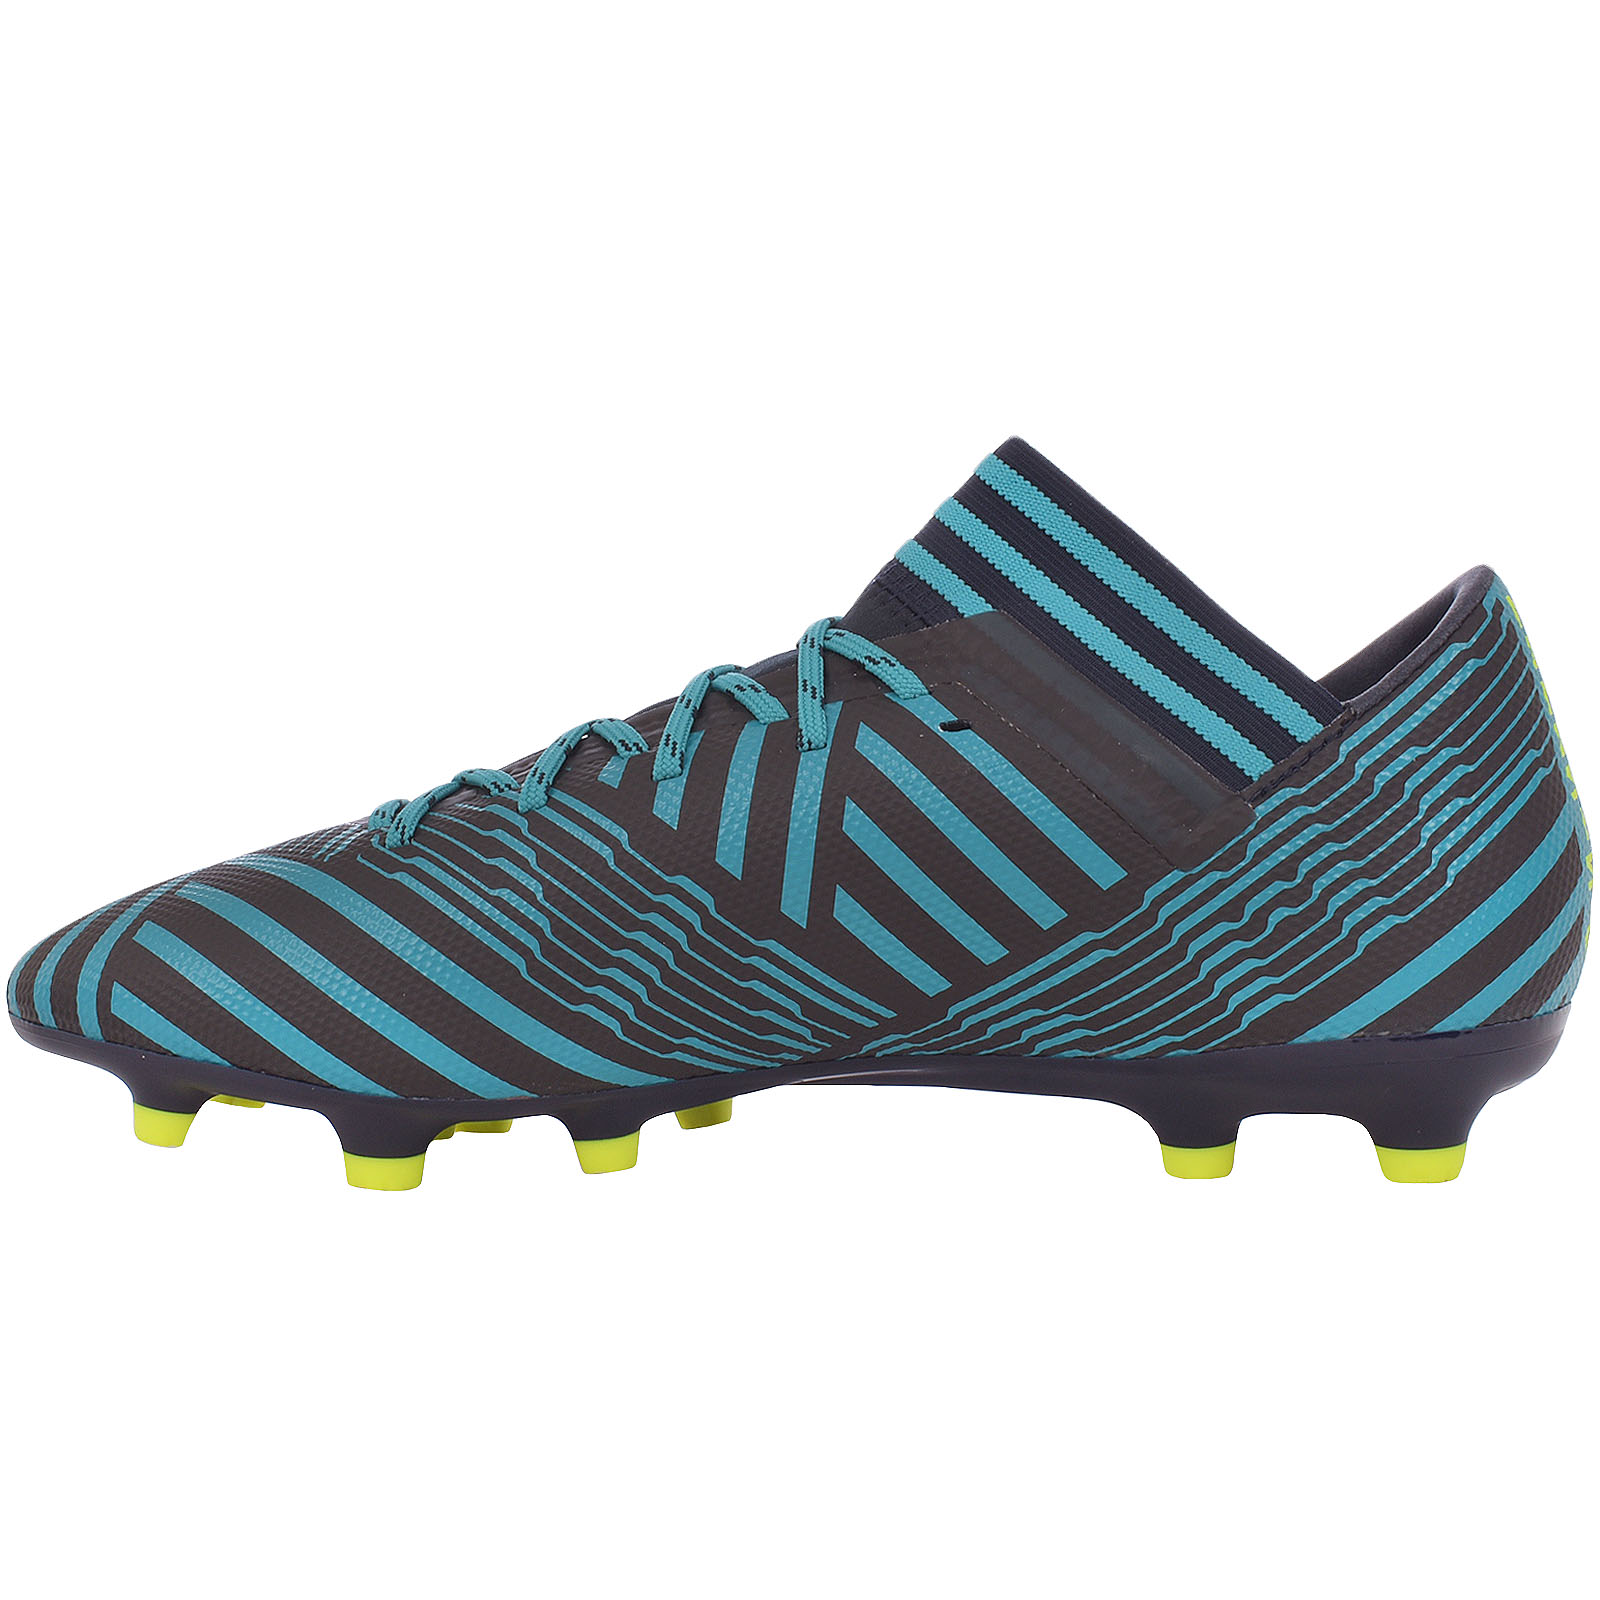 05f8e38b747 adidas Mens Nemeziz 17.3 FG Football BOOTS Shoes Footwear Sports Training  8. About this product. Picture 1 of 5  Picture 2 of 5  Picture 3 of 5 ...